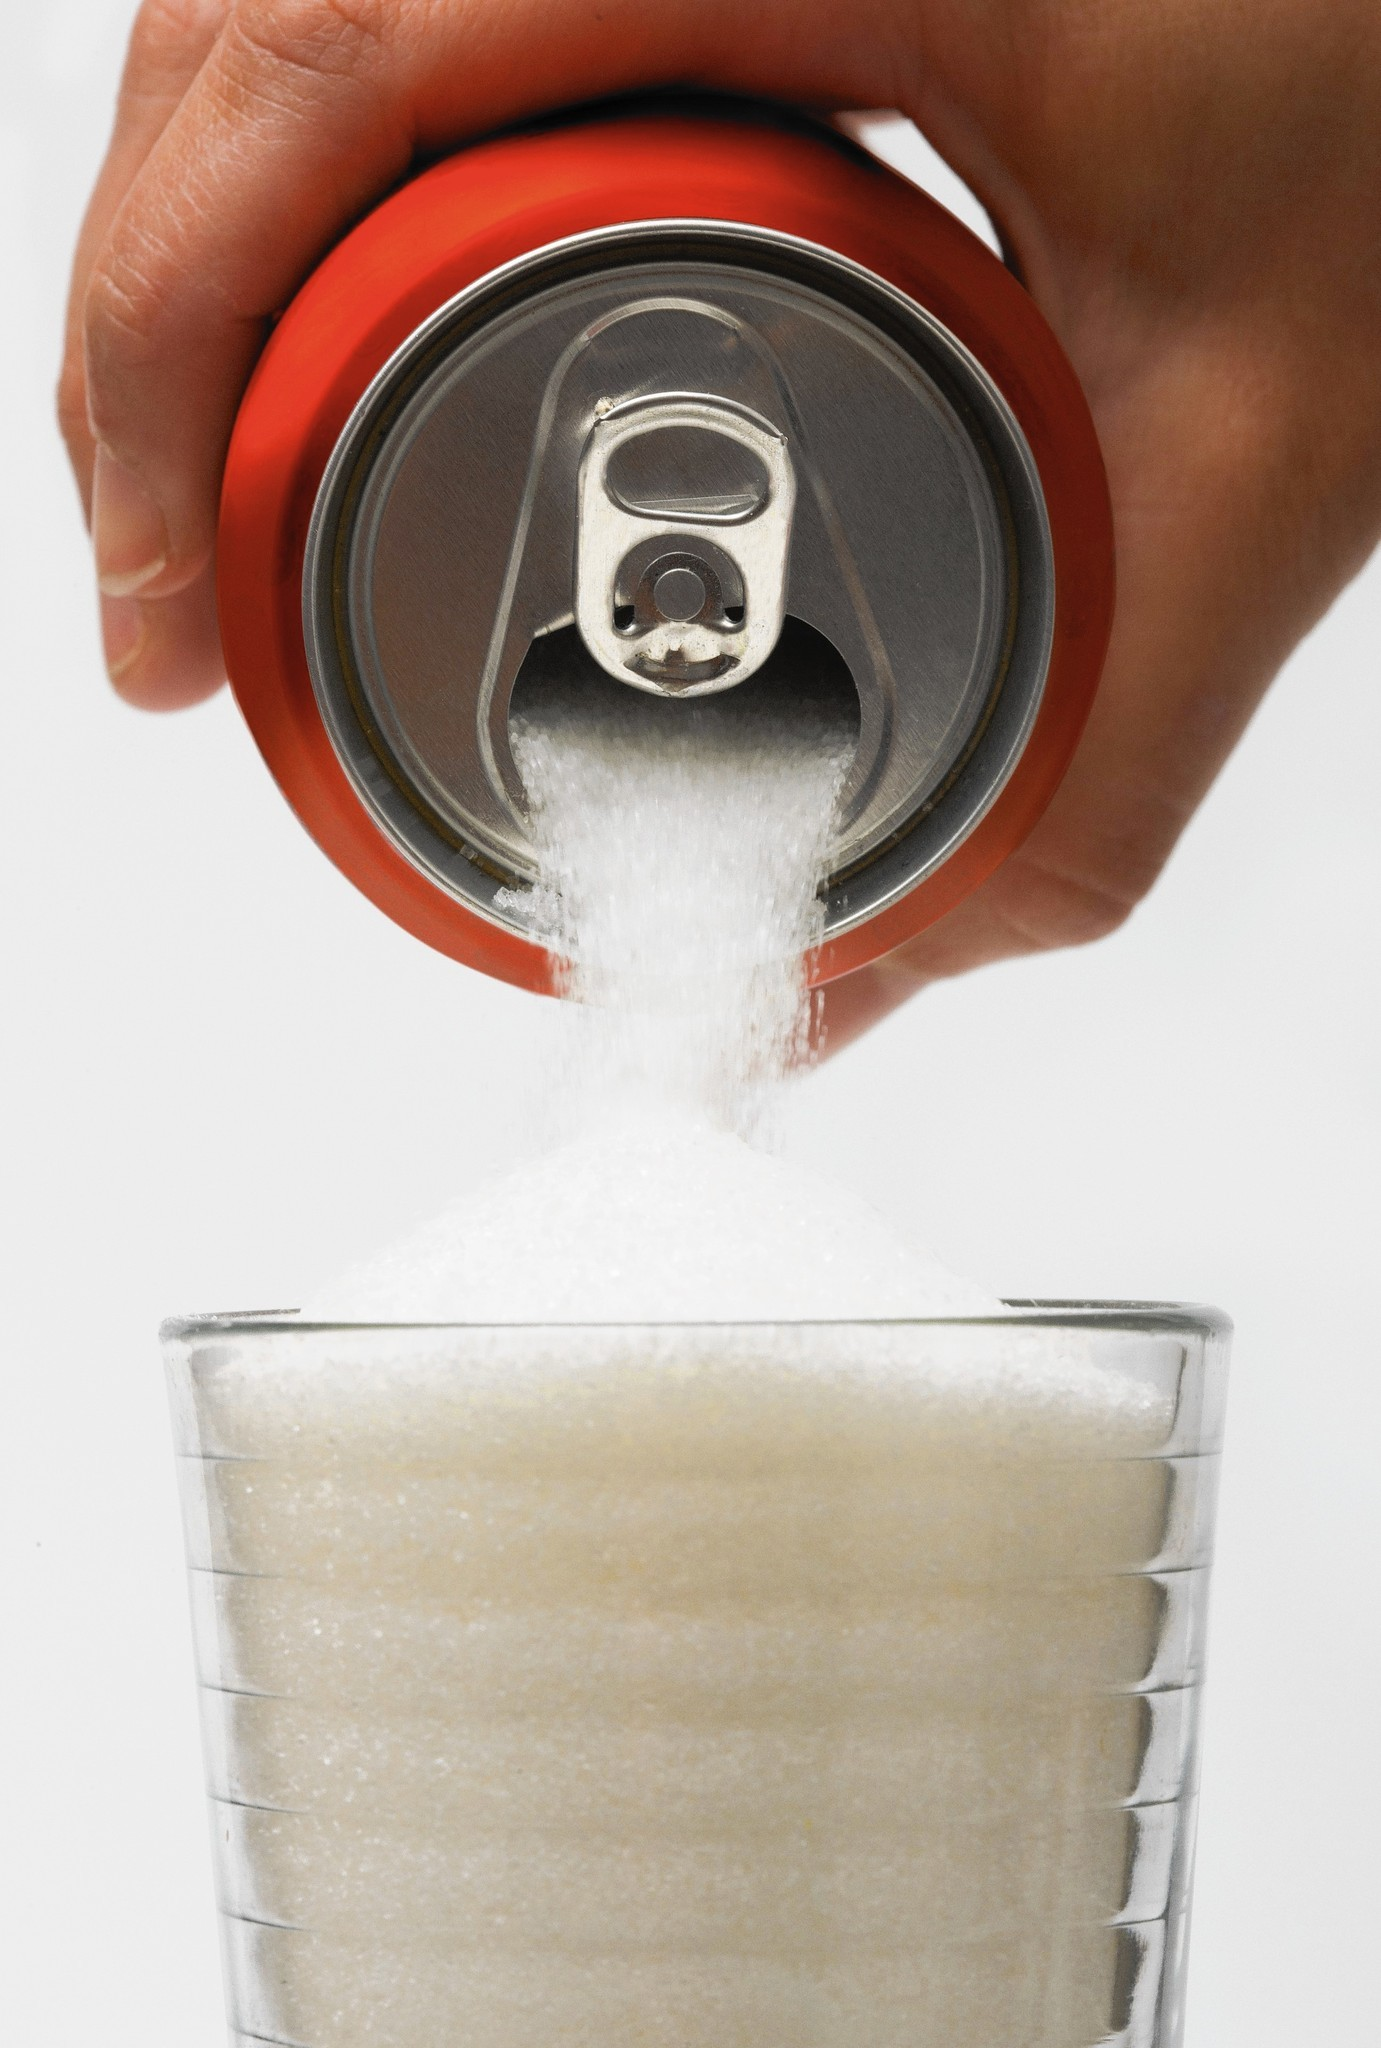 Scientific team sounds the alarm on sugar as a source of disease